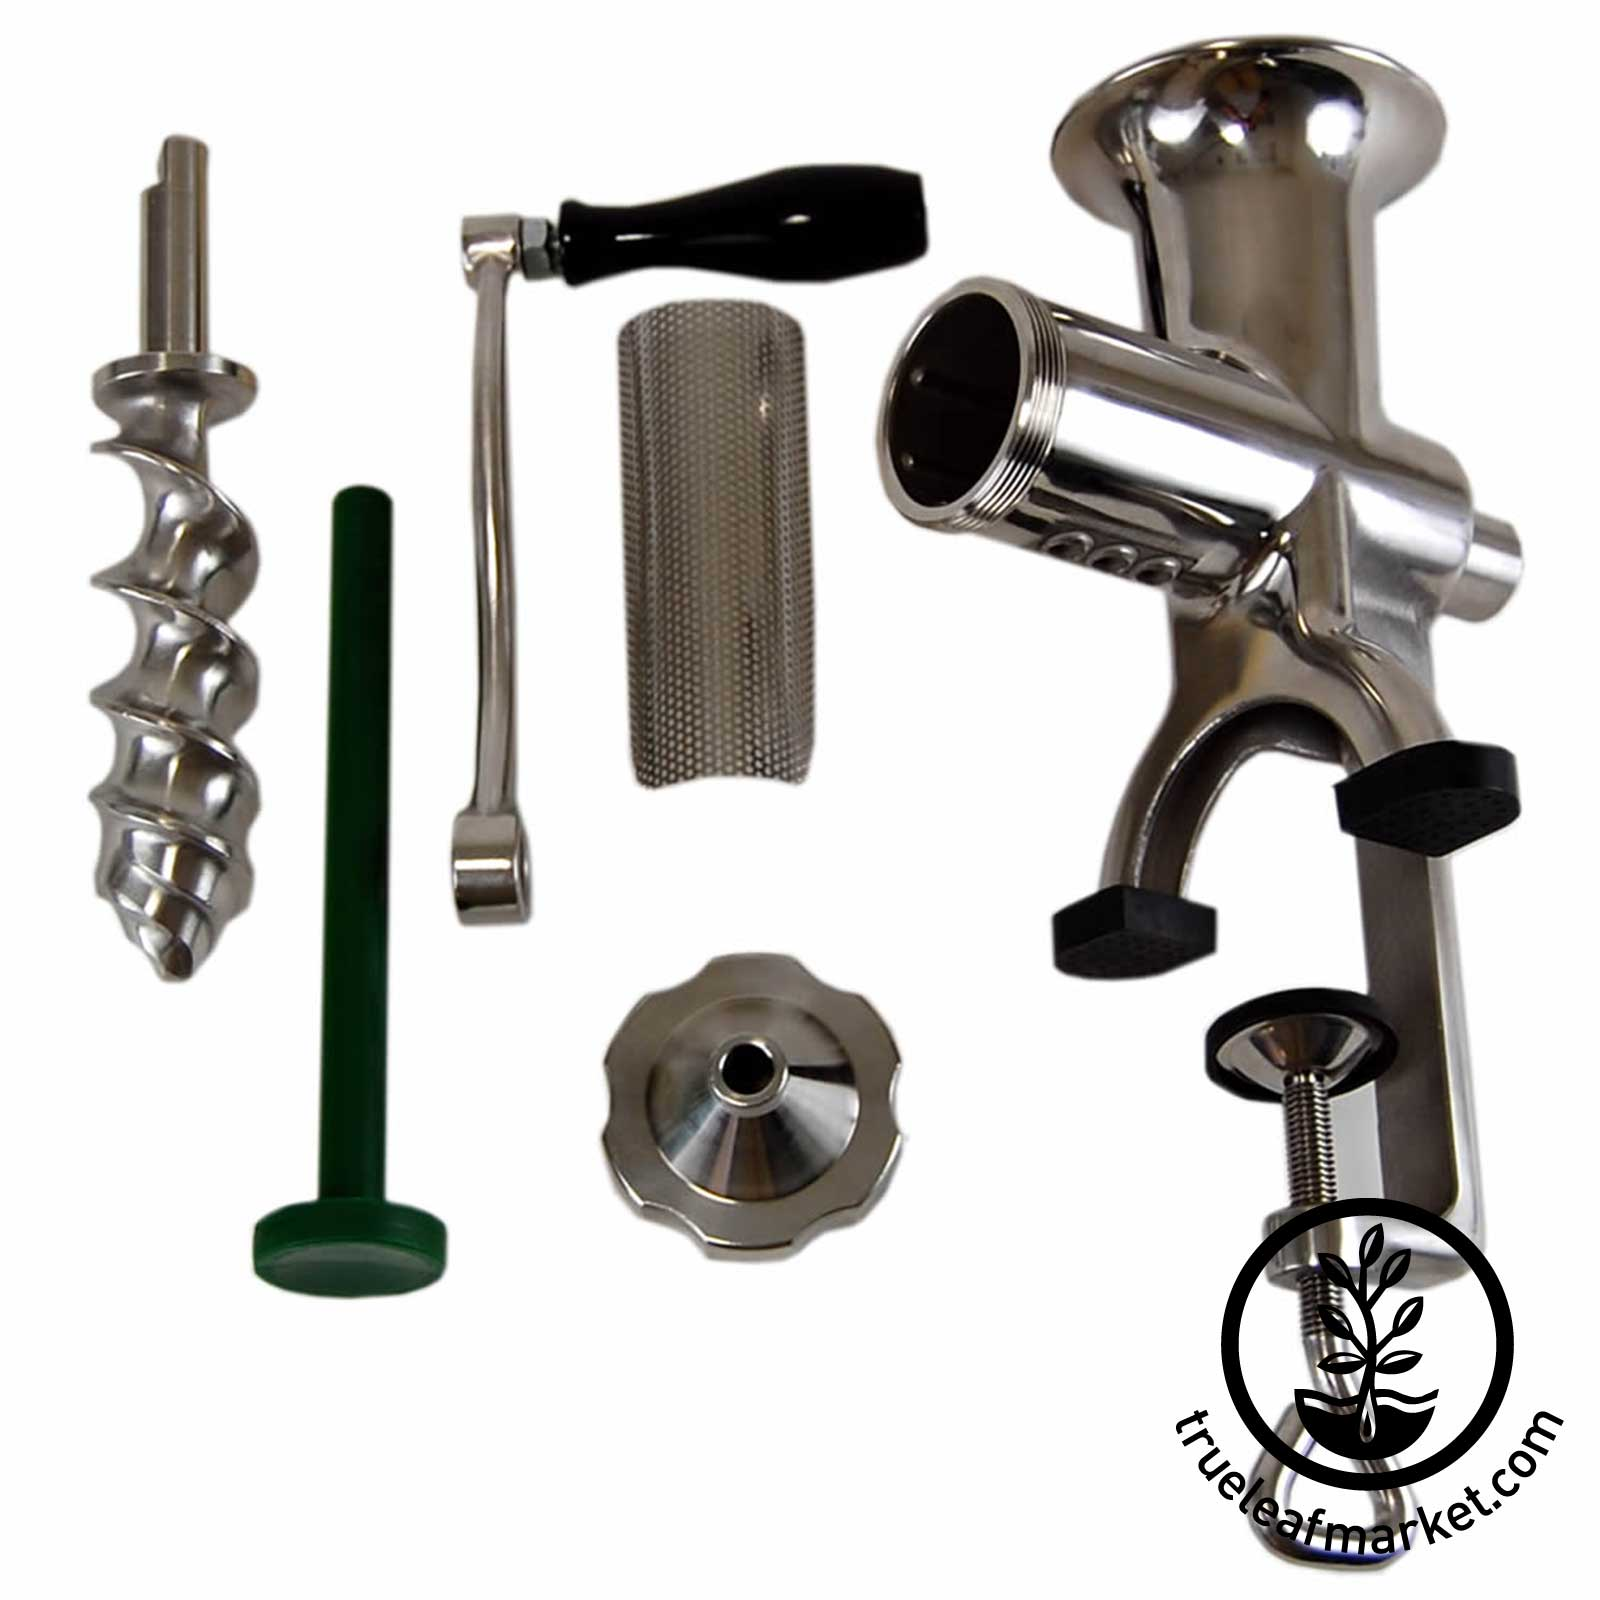 Hurricane Juicer Parts